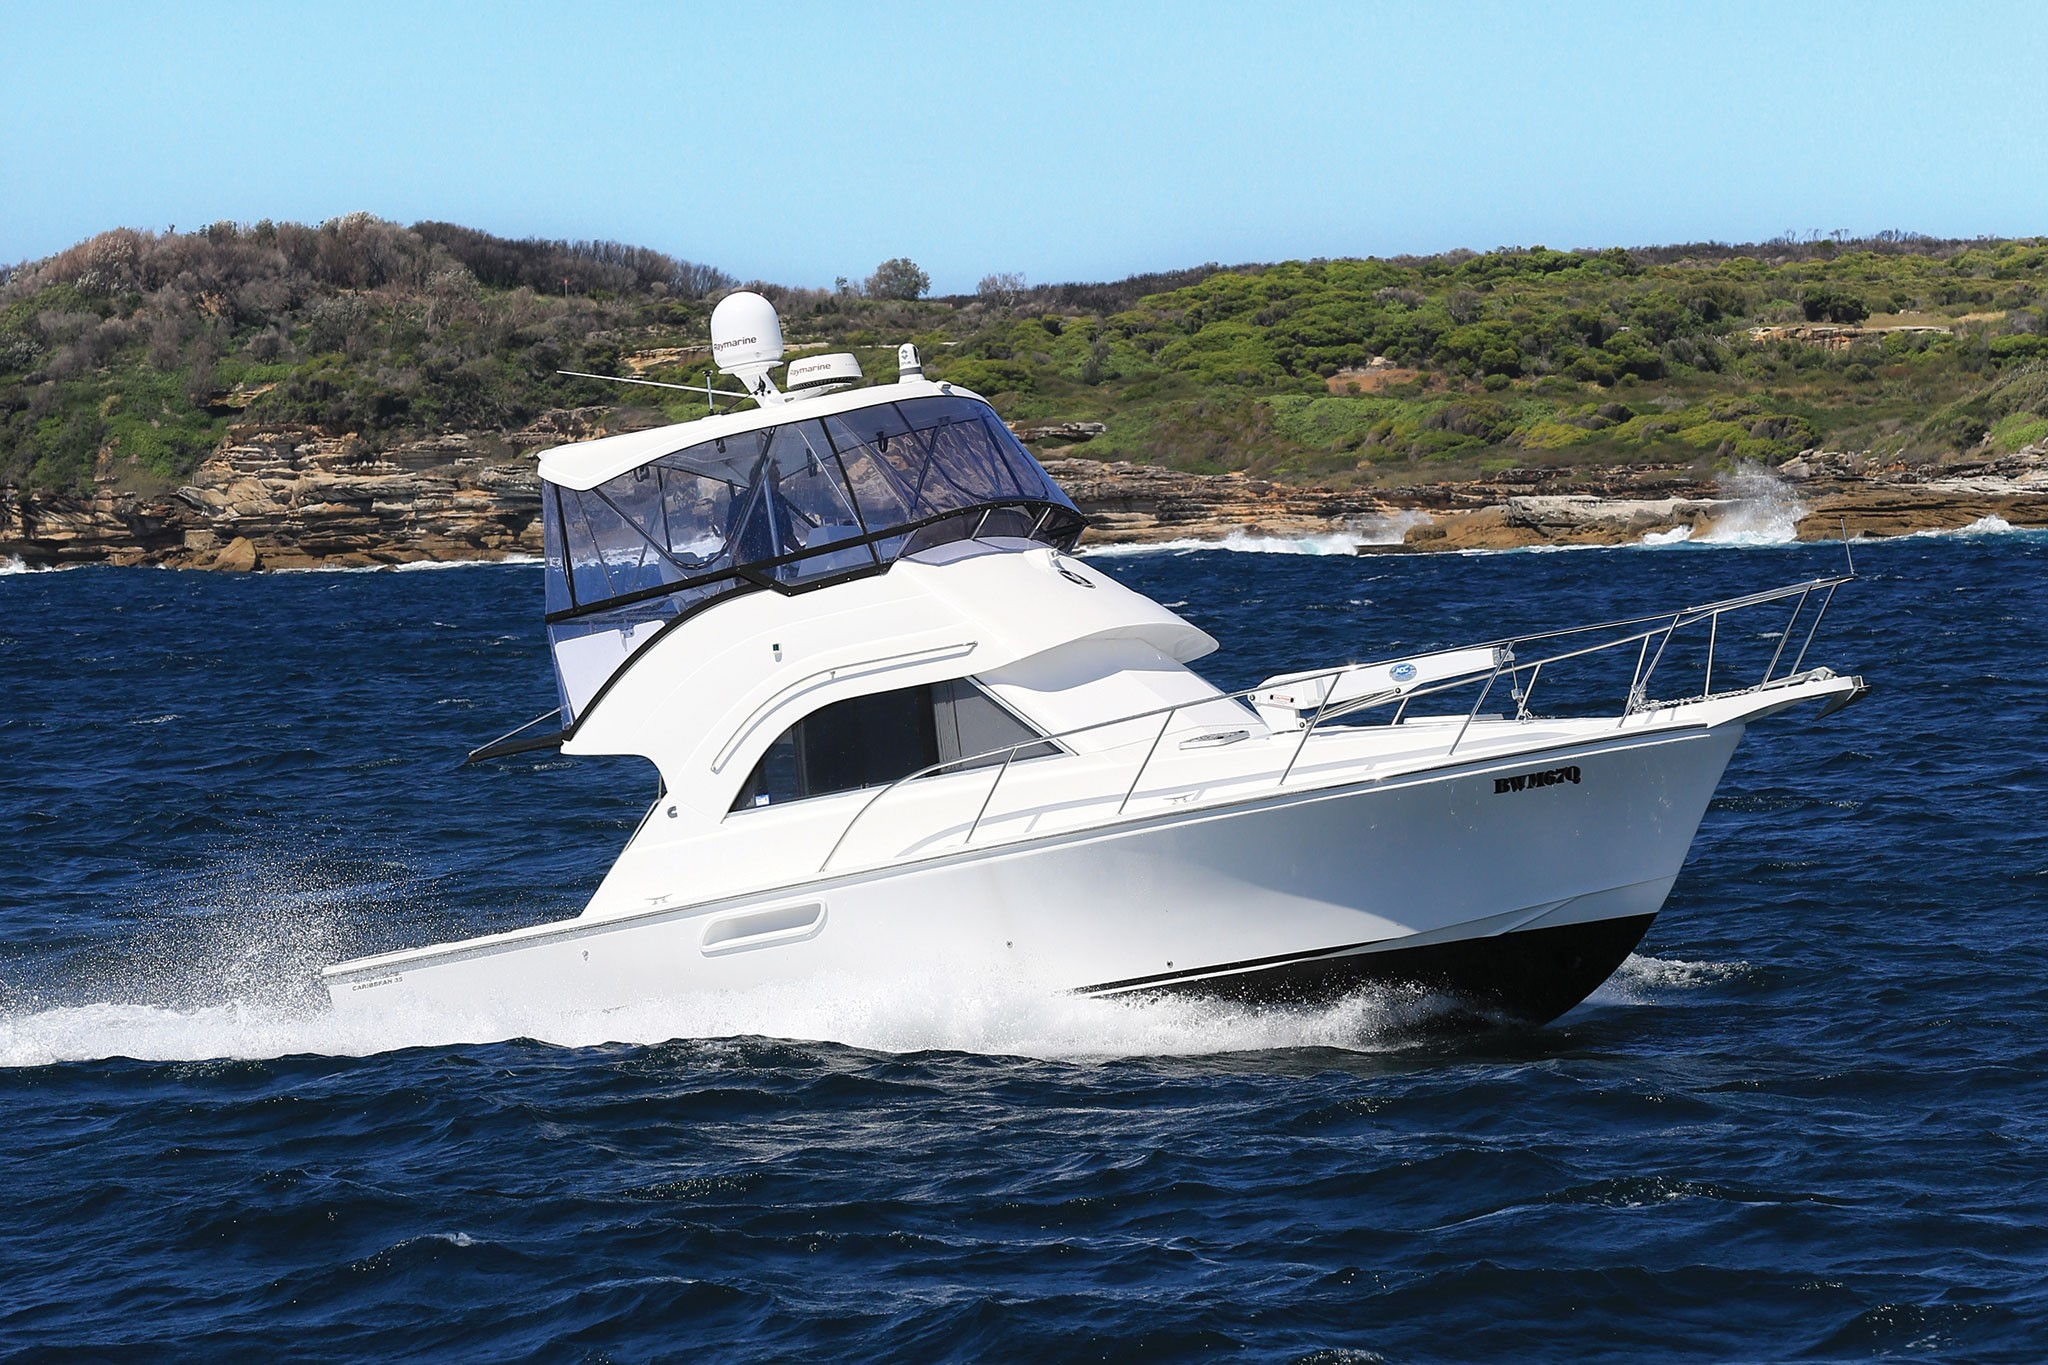 Review: Caribbean 35 MK3 Powerboat